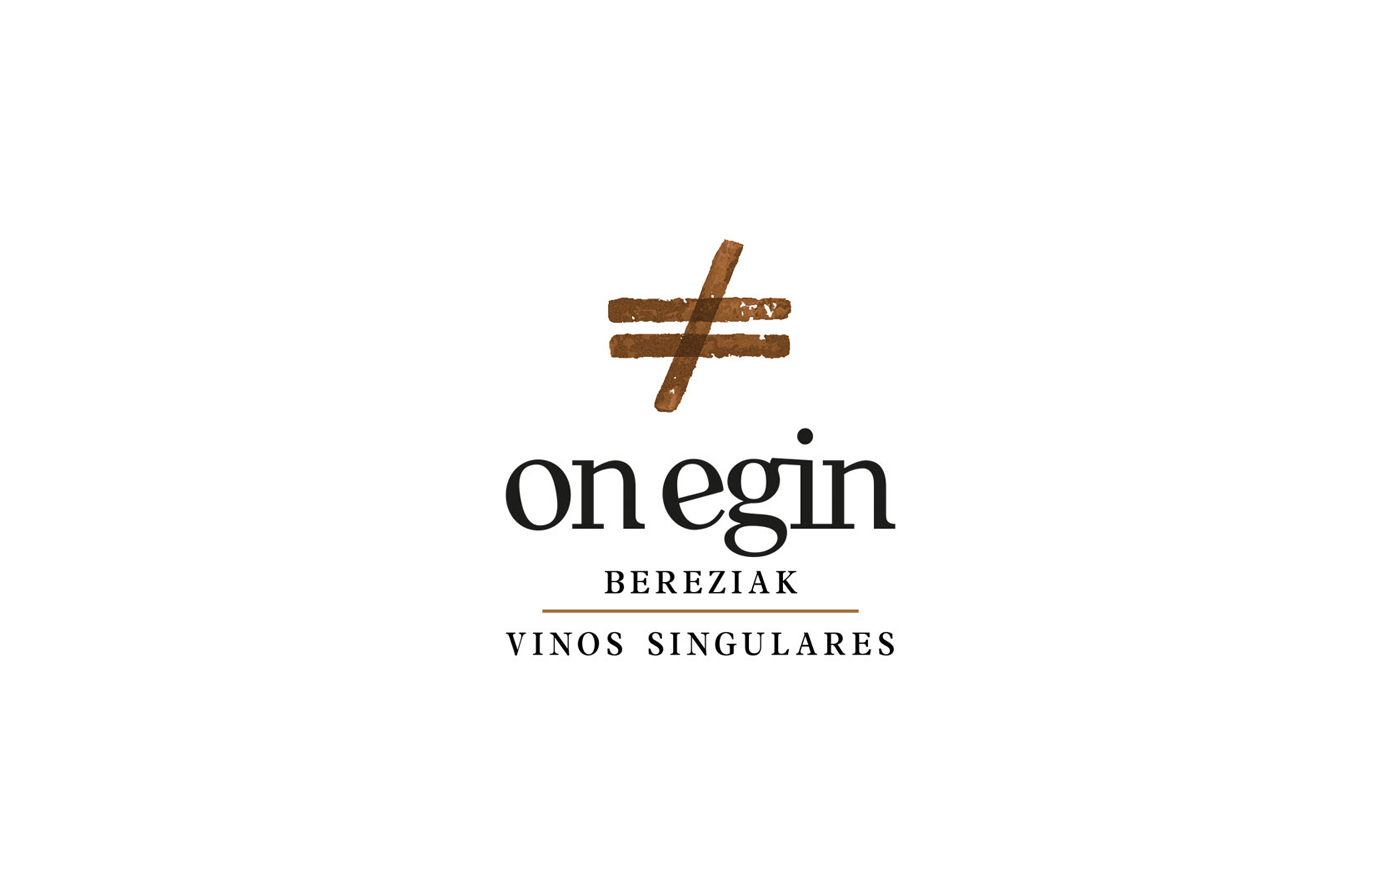 logo-on-egin icono grafico